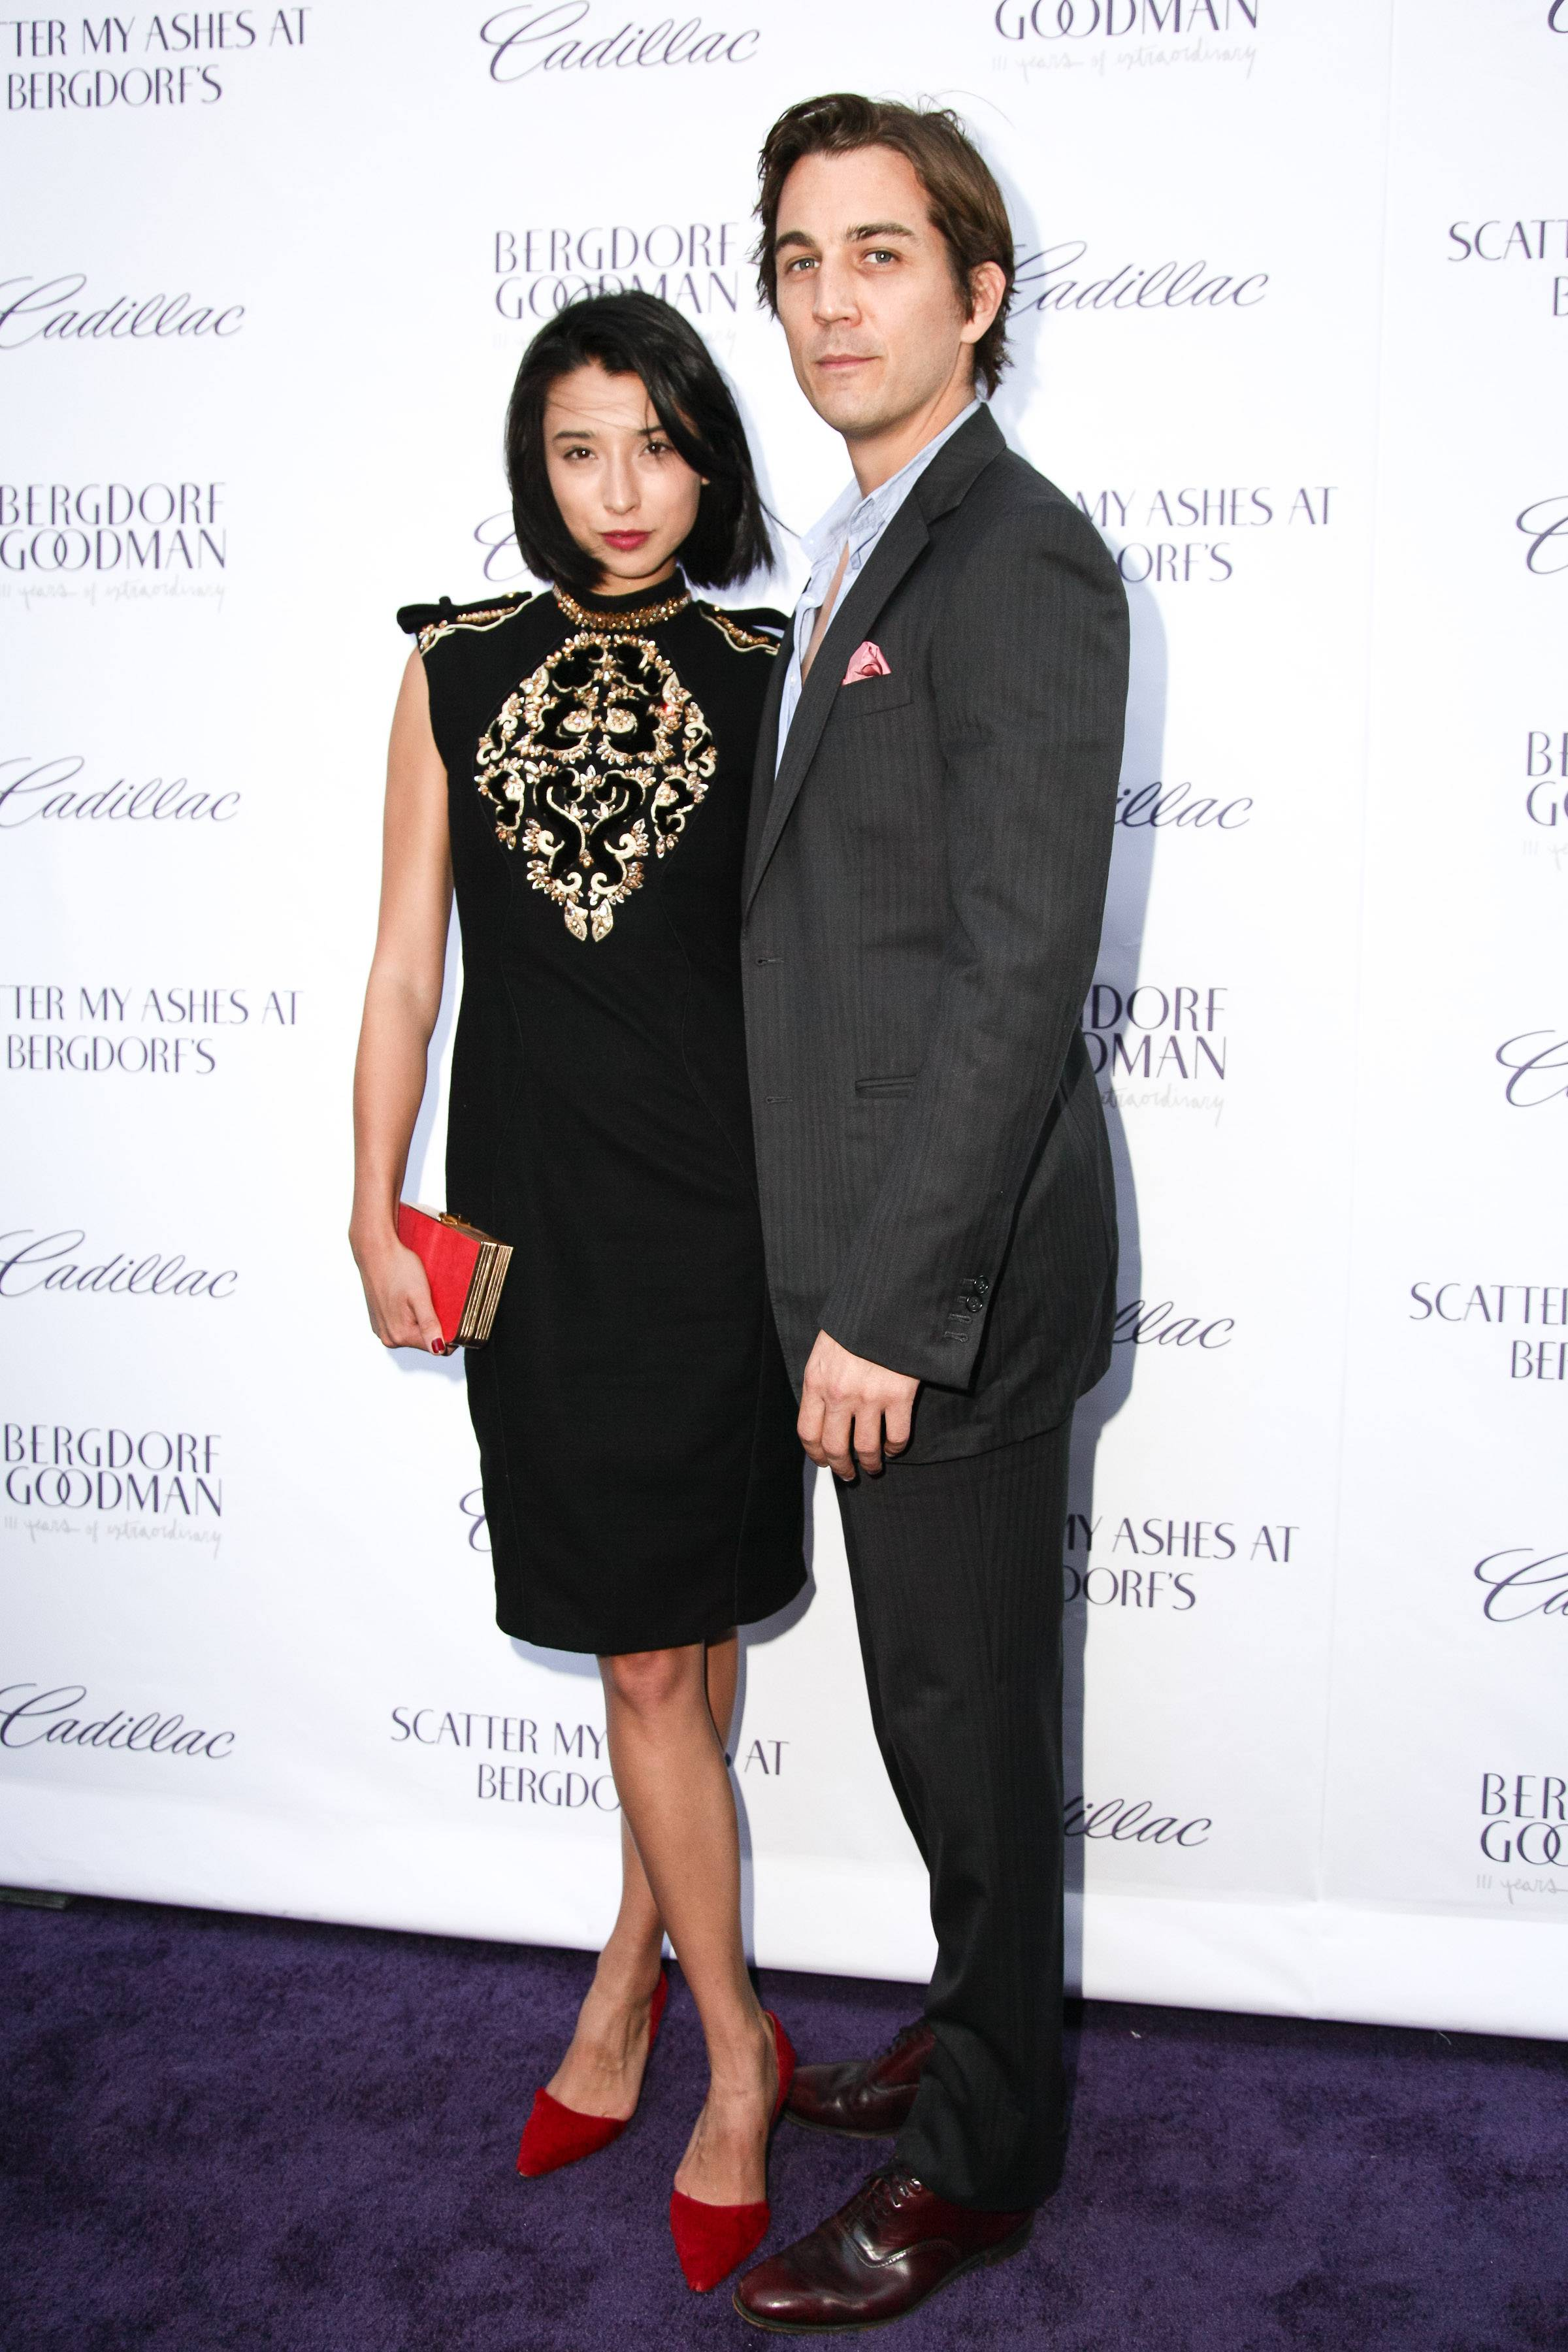 BERGDORF GOODMAN and CADILLAC host a special screening of